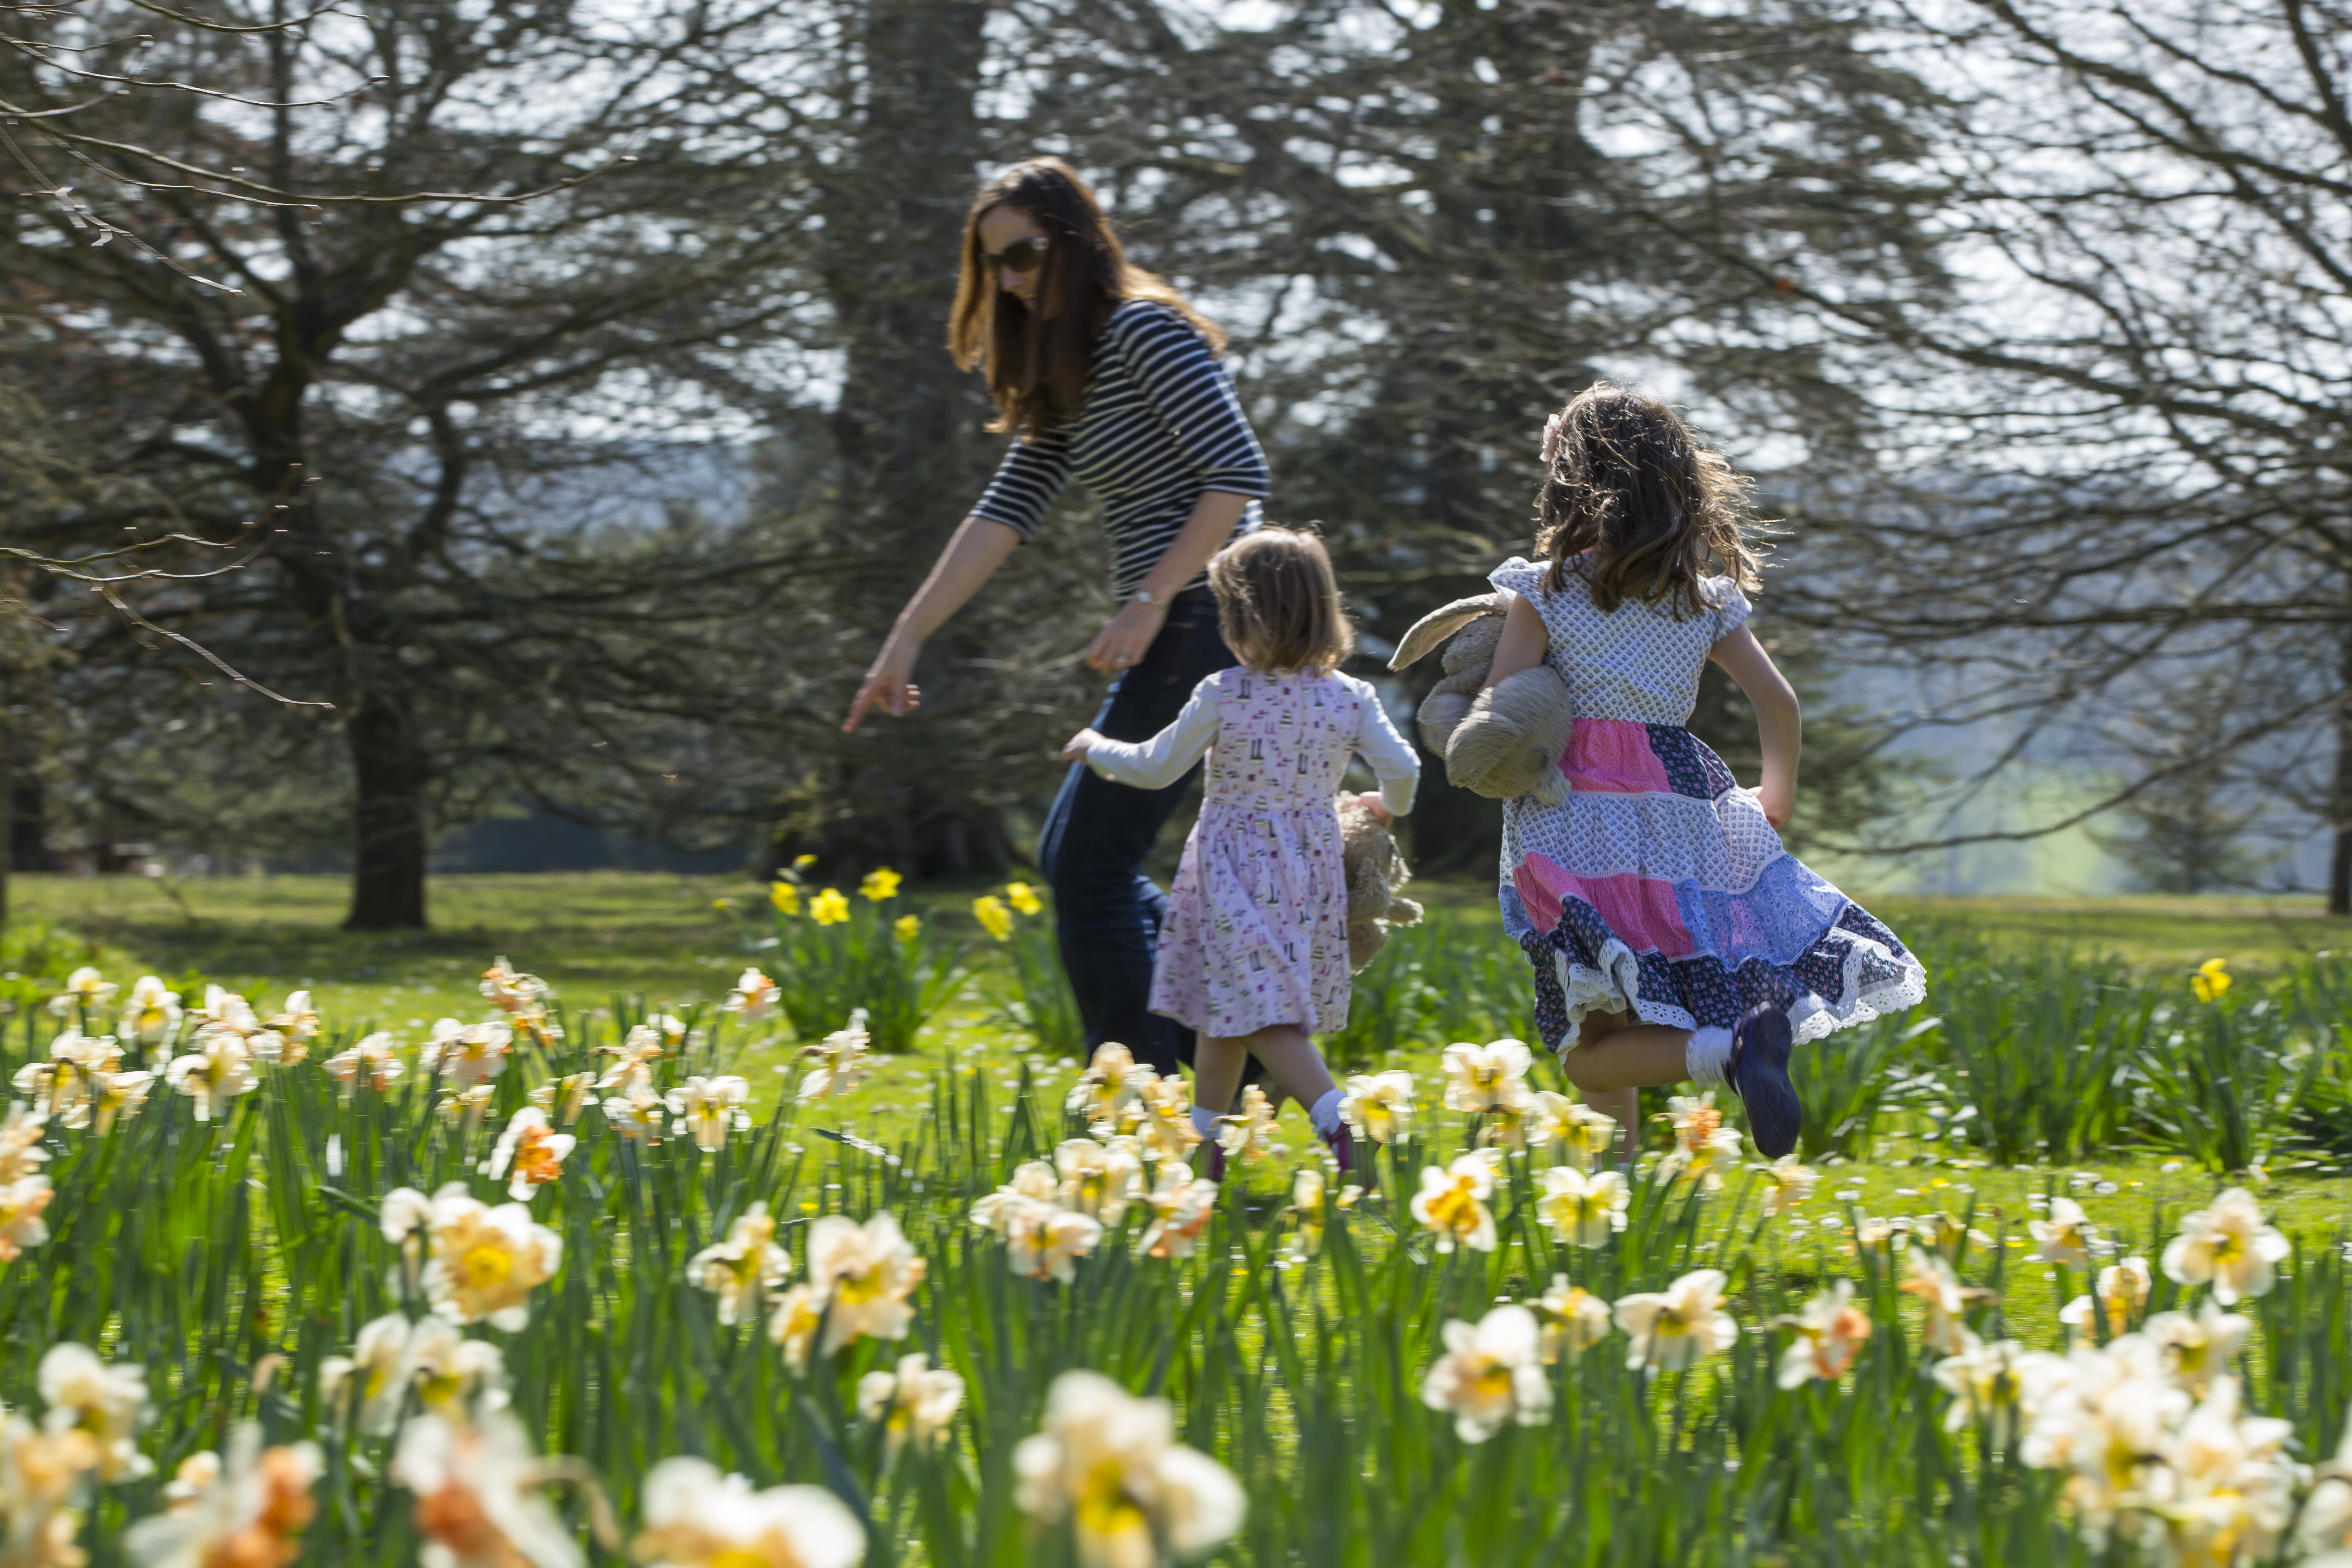 10 Ways to Treat Your Mum this Mother's Day in Hampshire